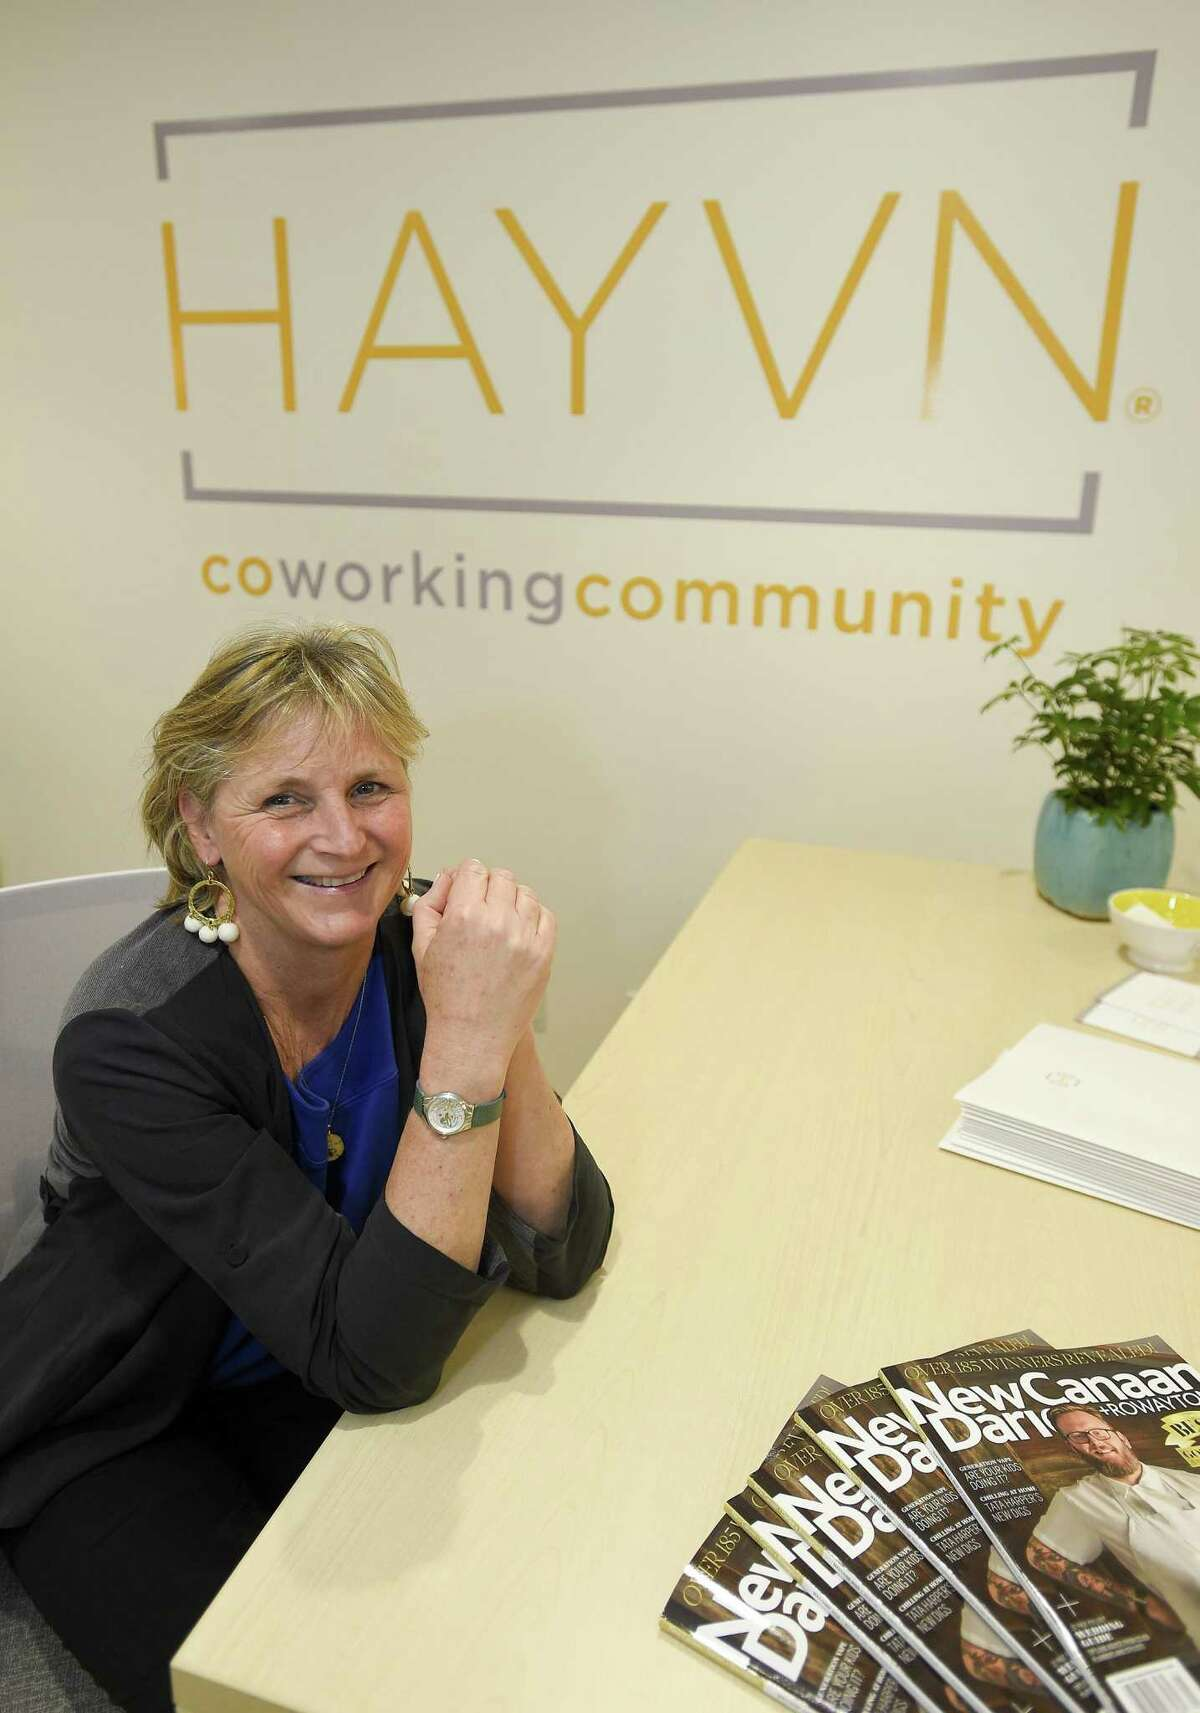 Felicia Rubinstein is the founder of the new women-focused co-working center, Hayvn, which is based at 320 Post Road in Darien, Conn.